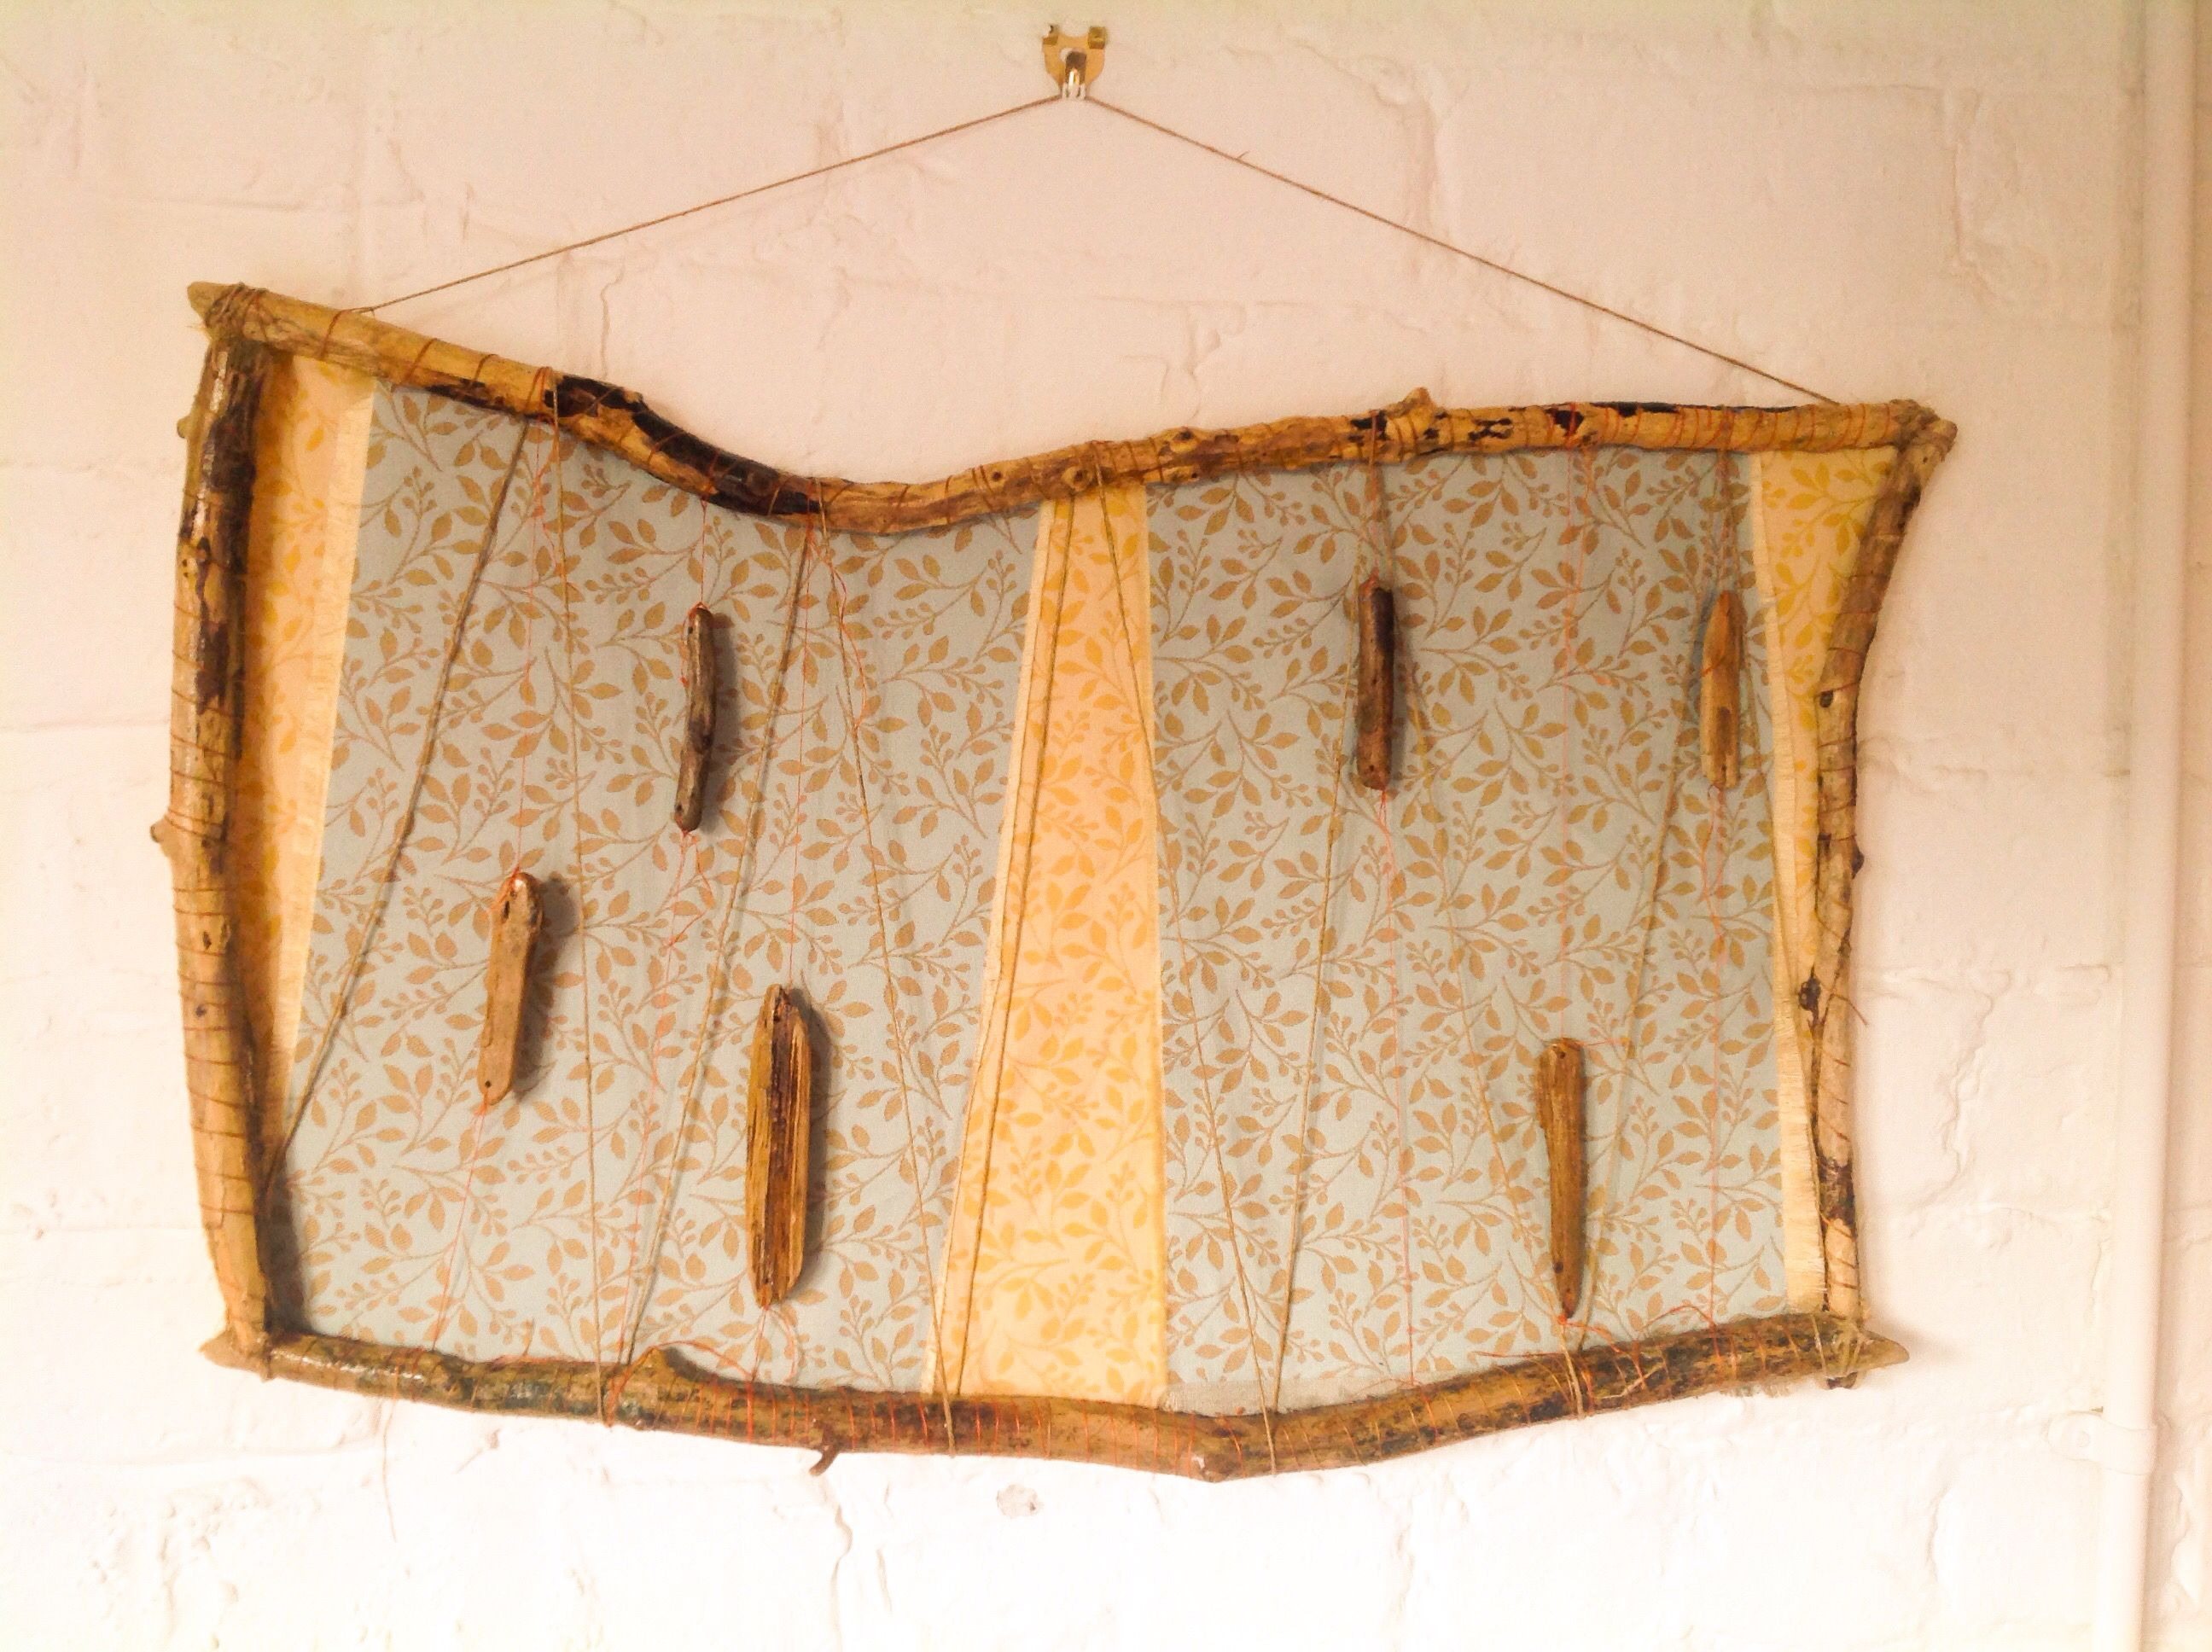 Wall hanging made from driftwood, twine and beautiful fabric panels ...